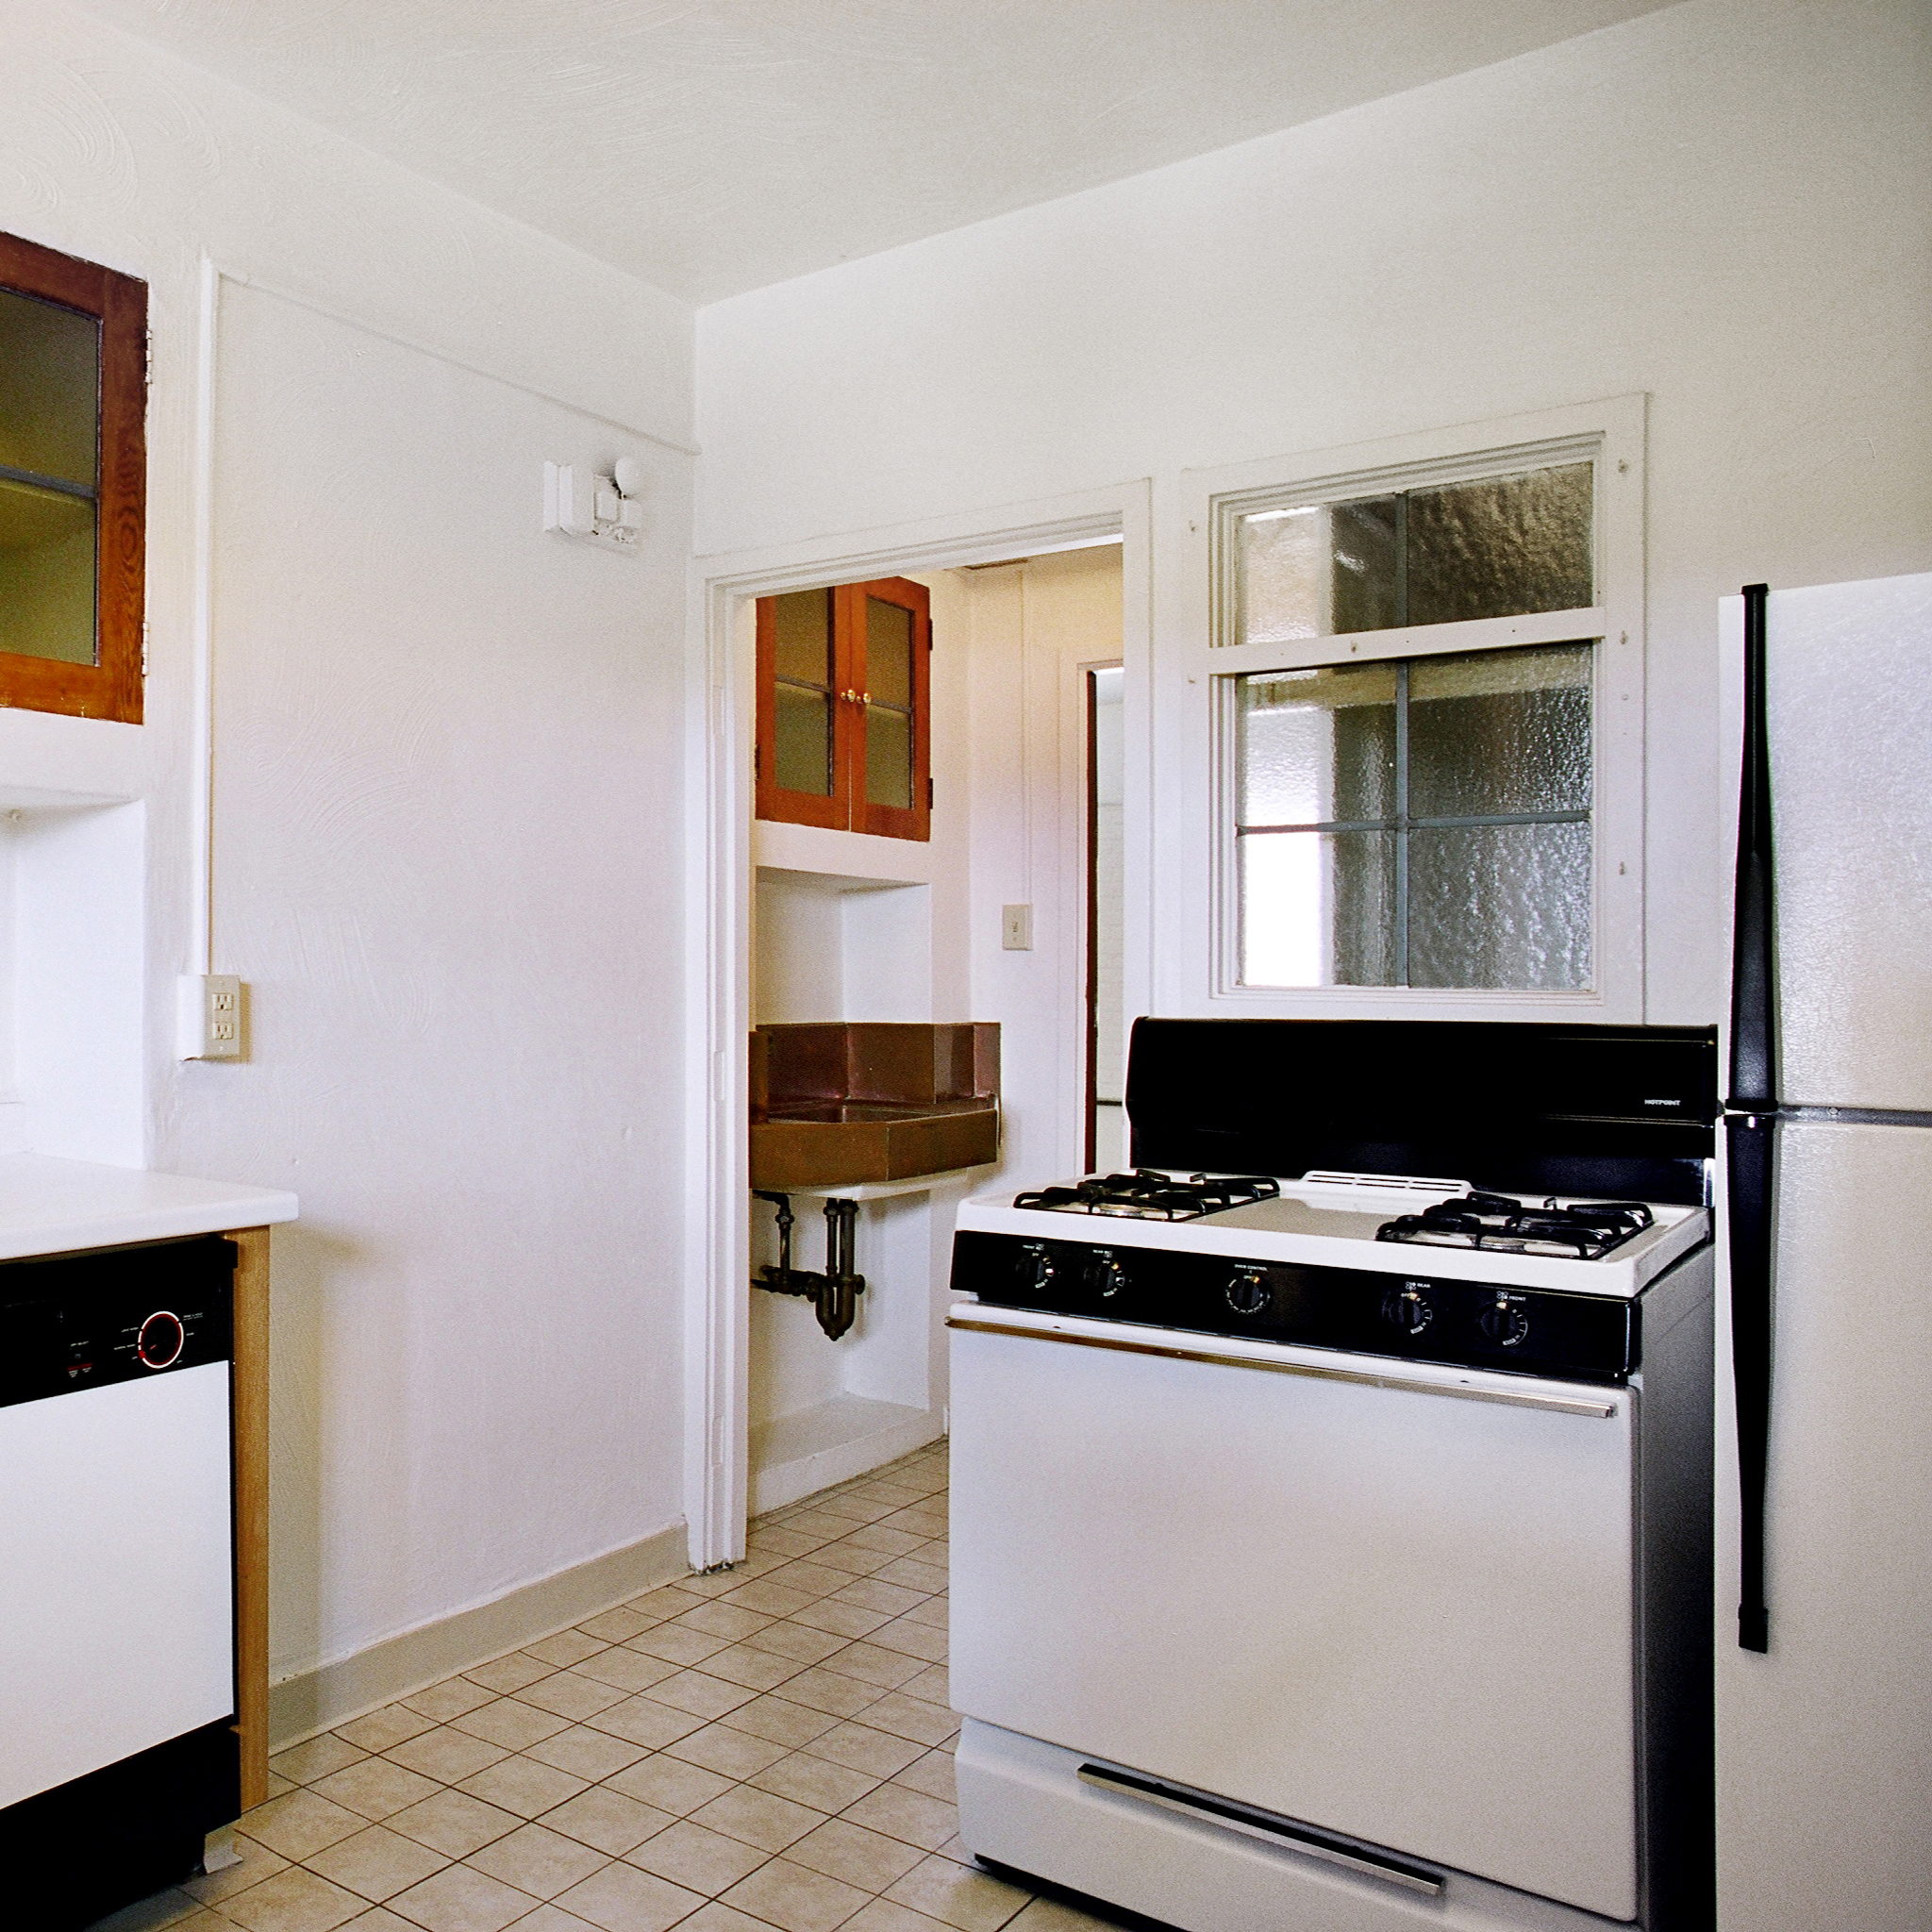 interior of 342 S. Highland Ave, Apt. 15A 8